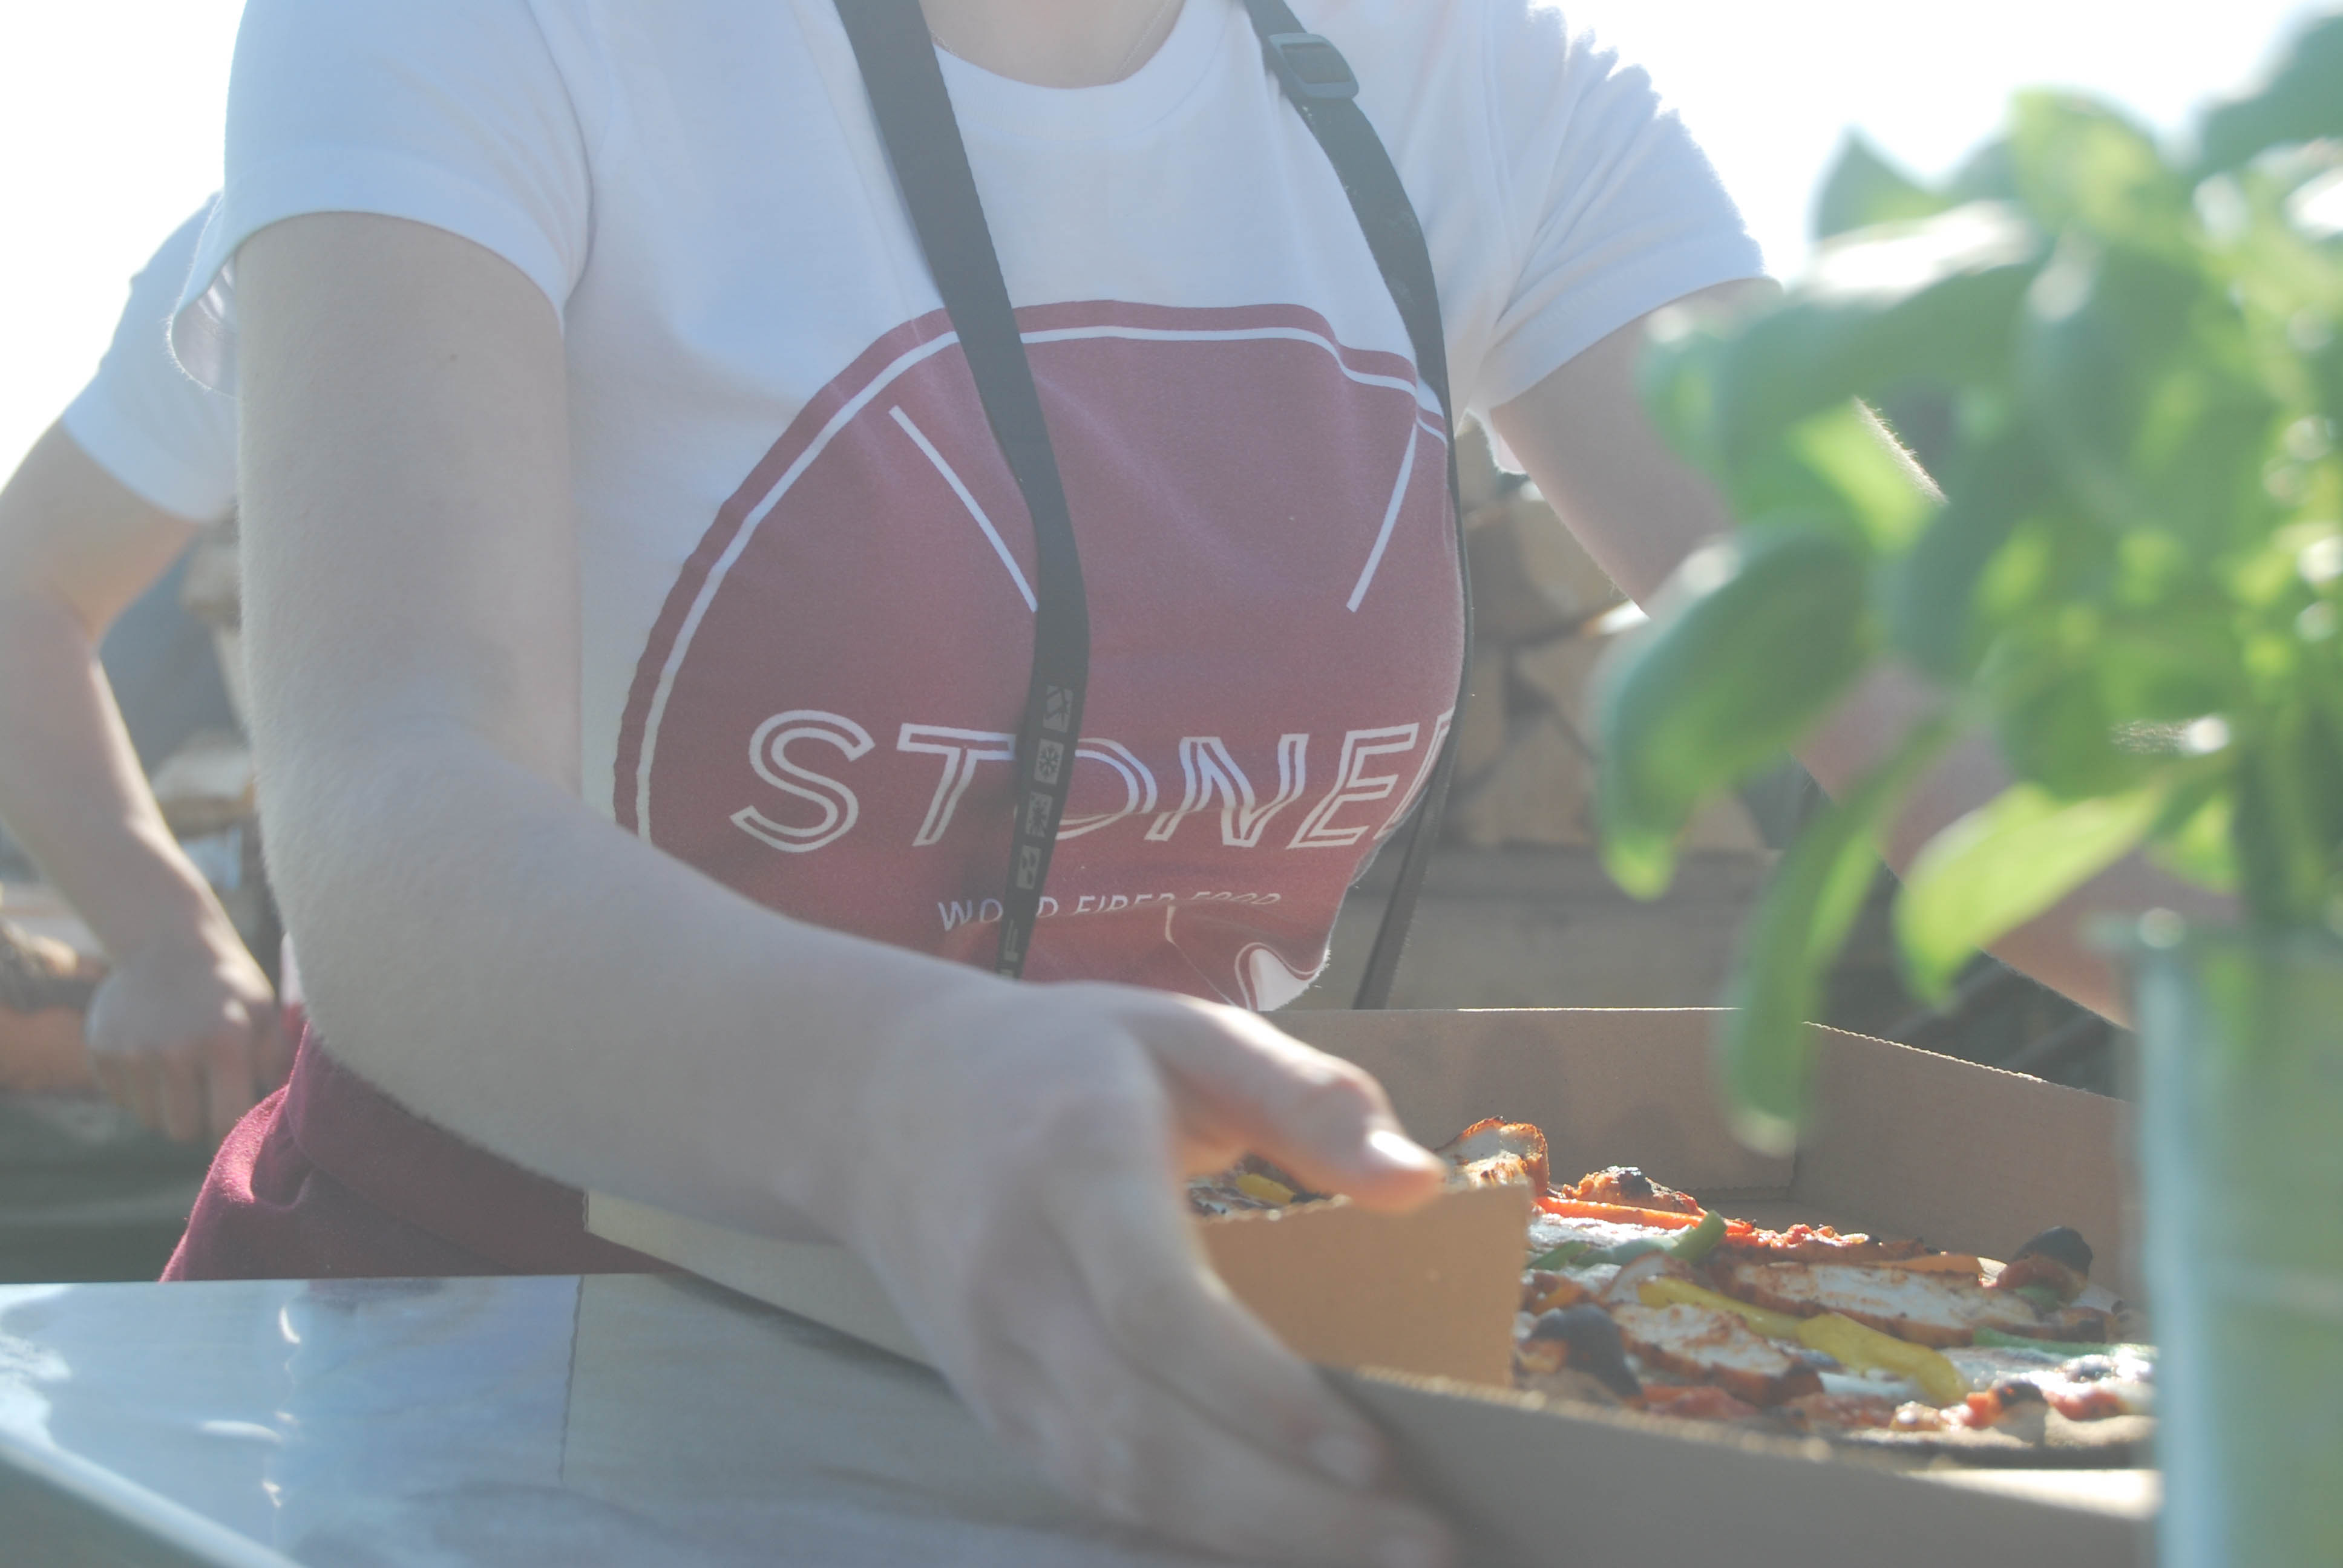 Best wood fired pizzas